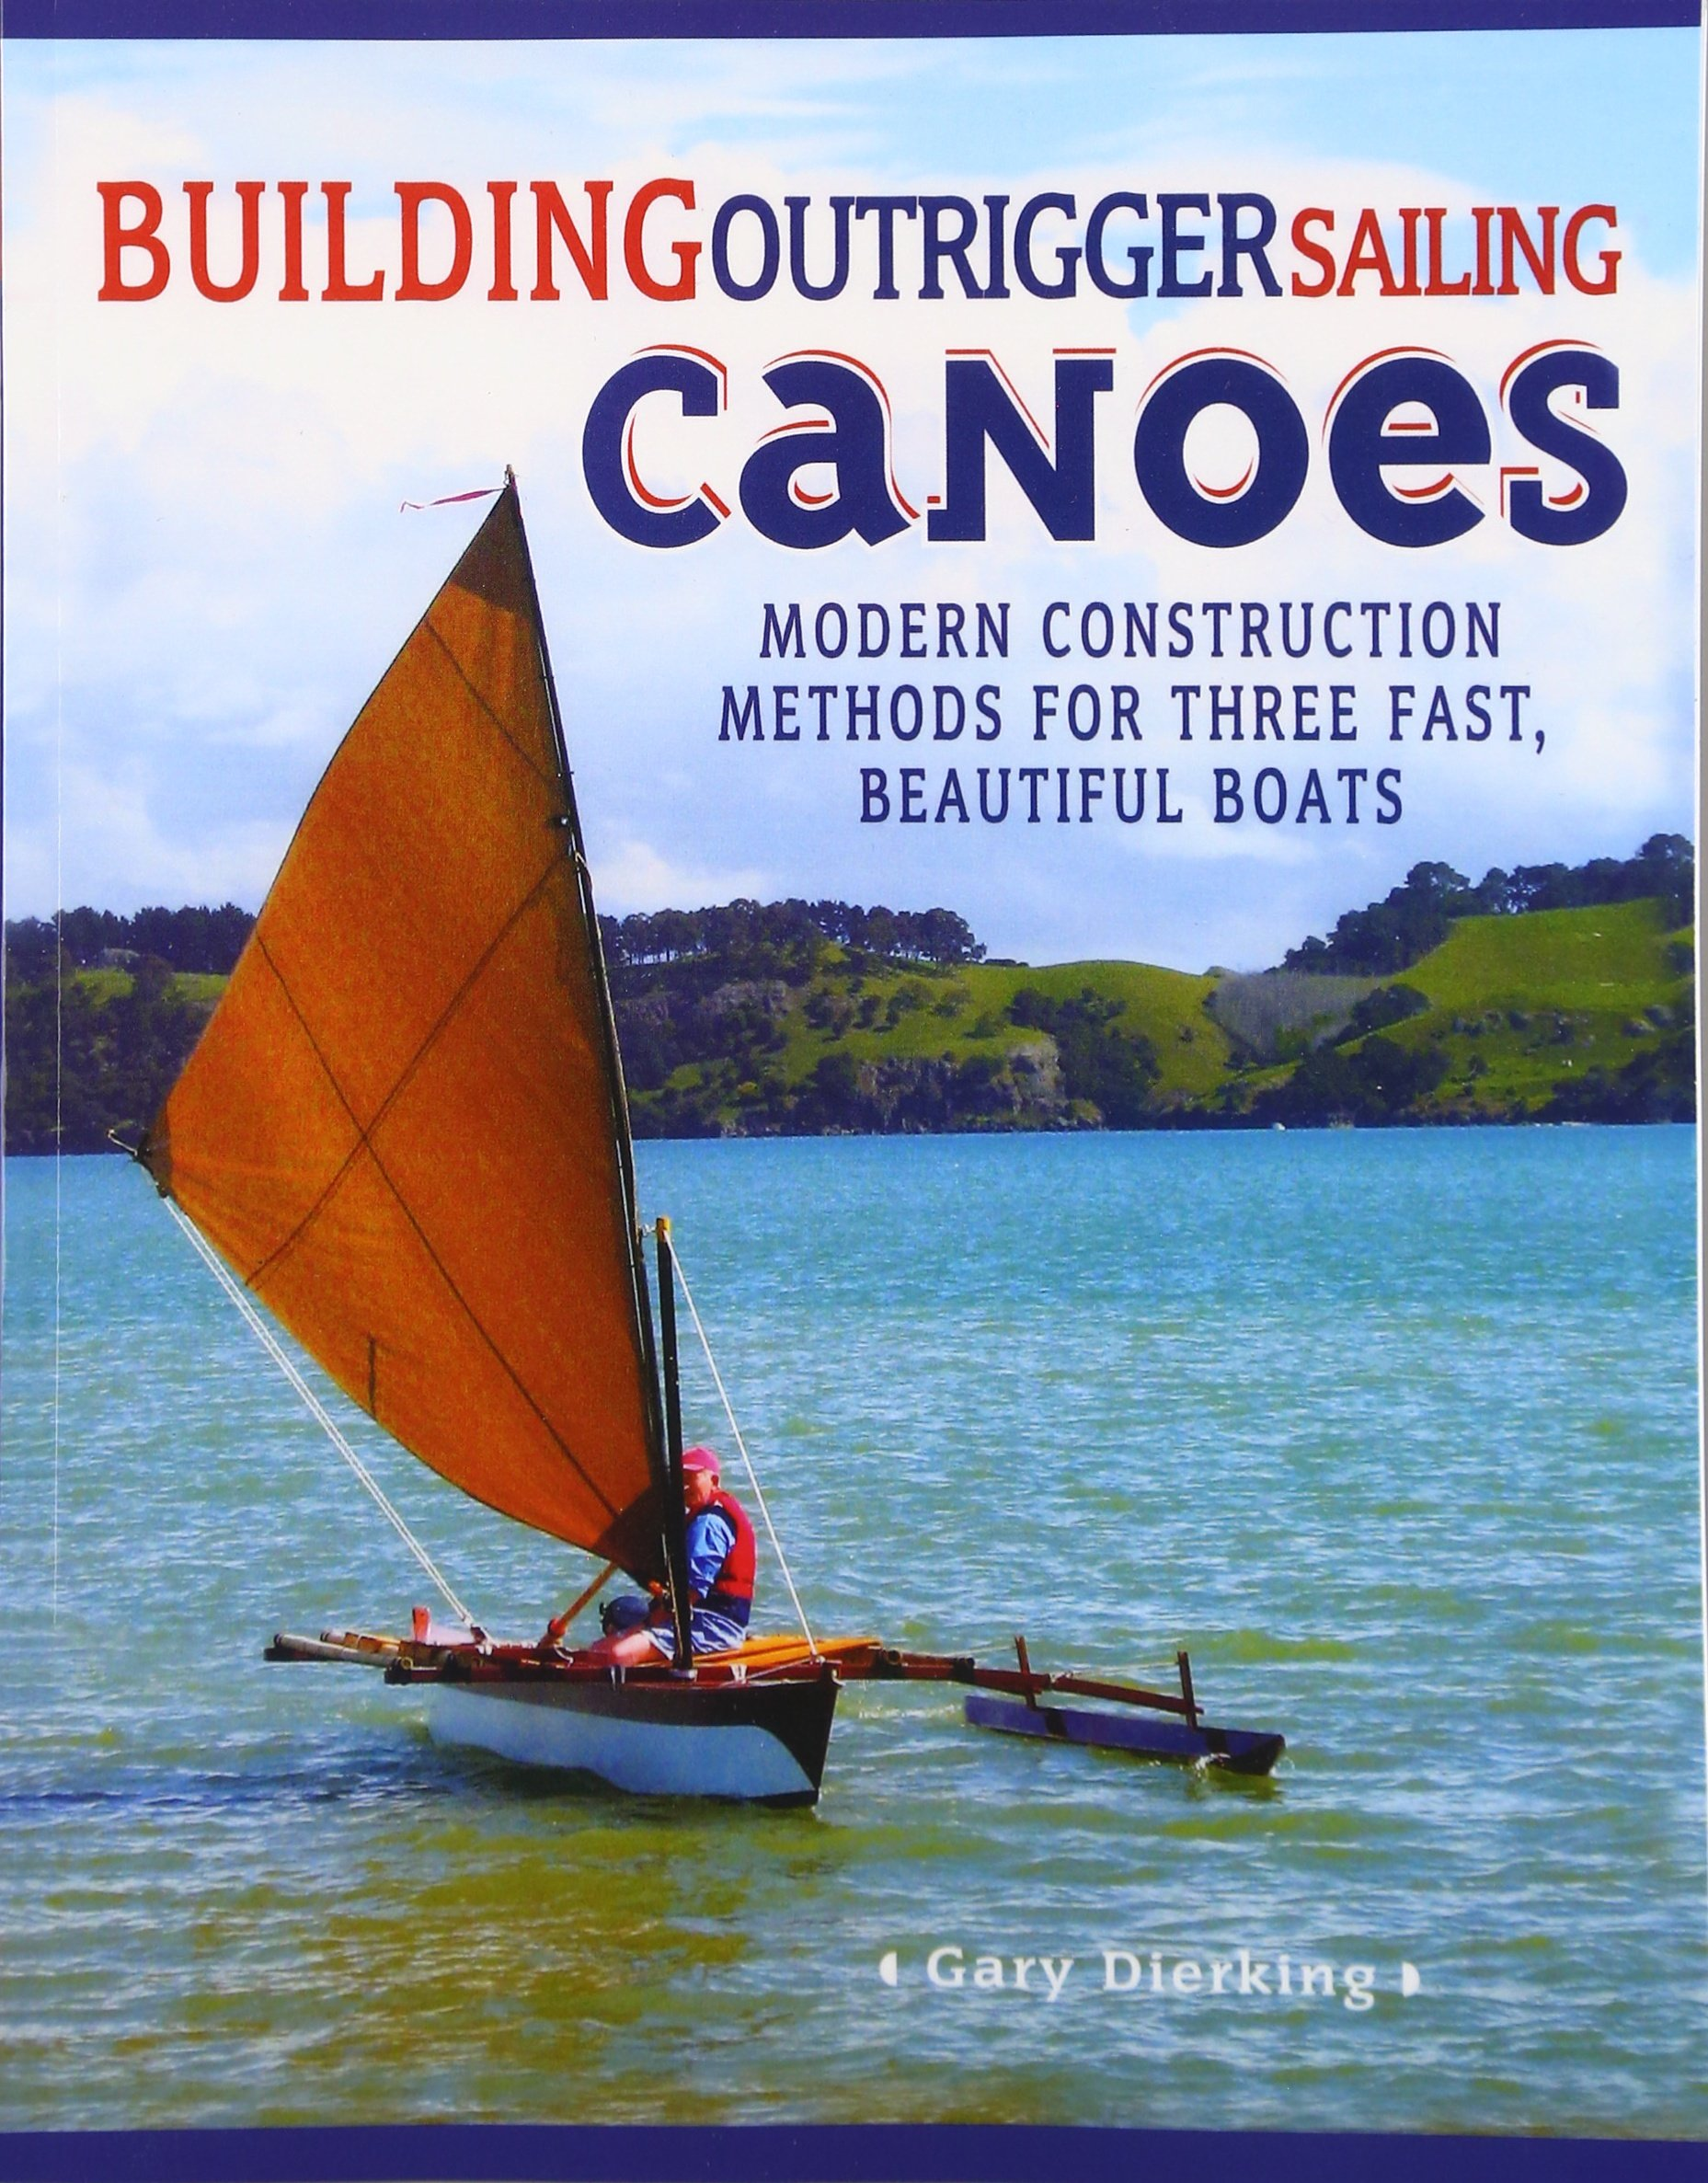 Building Outrigger Sailing Canoes: Modern Construction Methods for Three  Fast, Beautiful Boats: Gary Dierking: 9780071487917: Amazon.com: Books